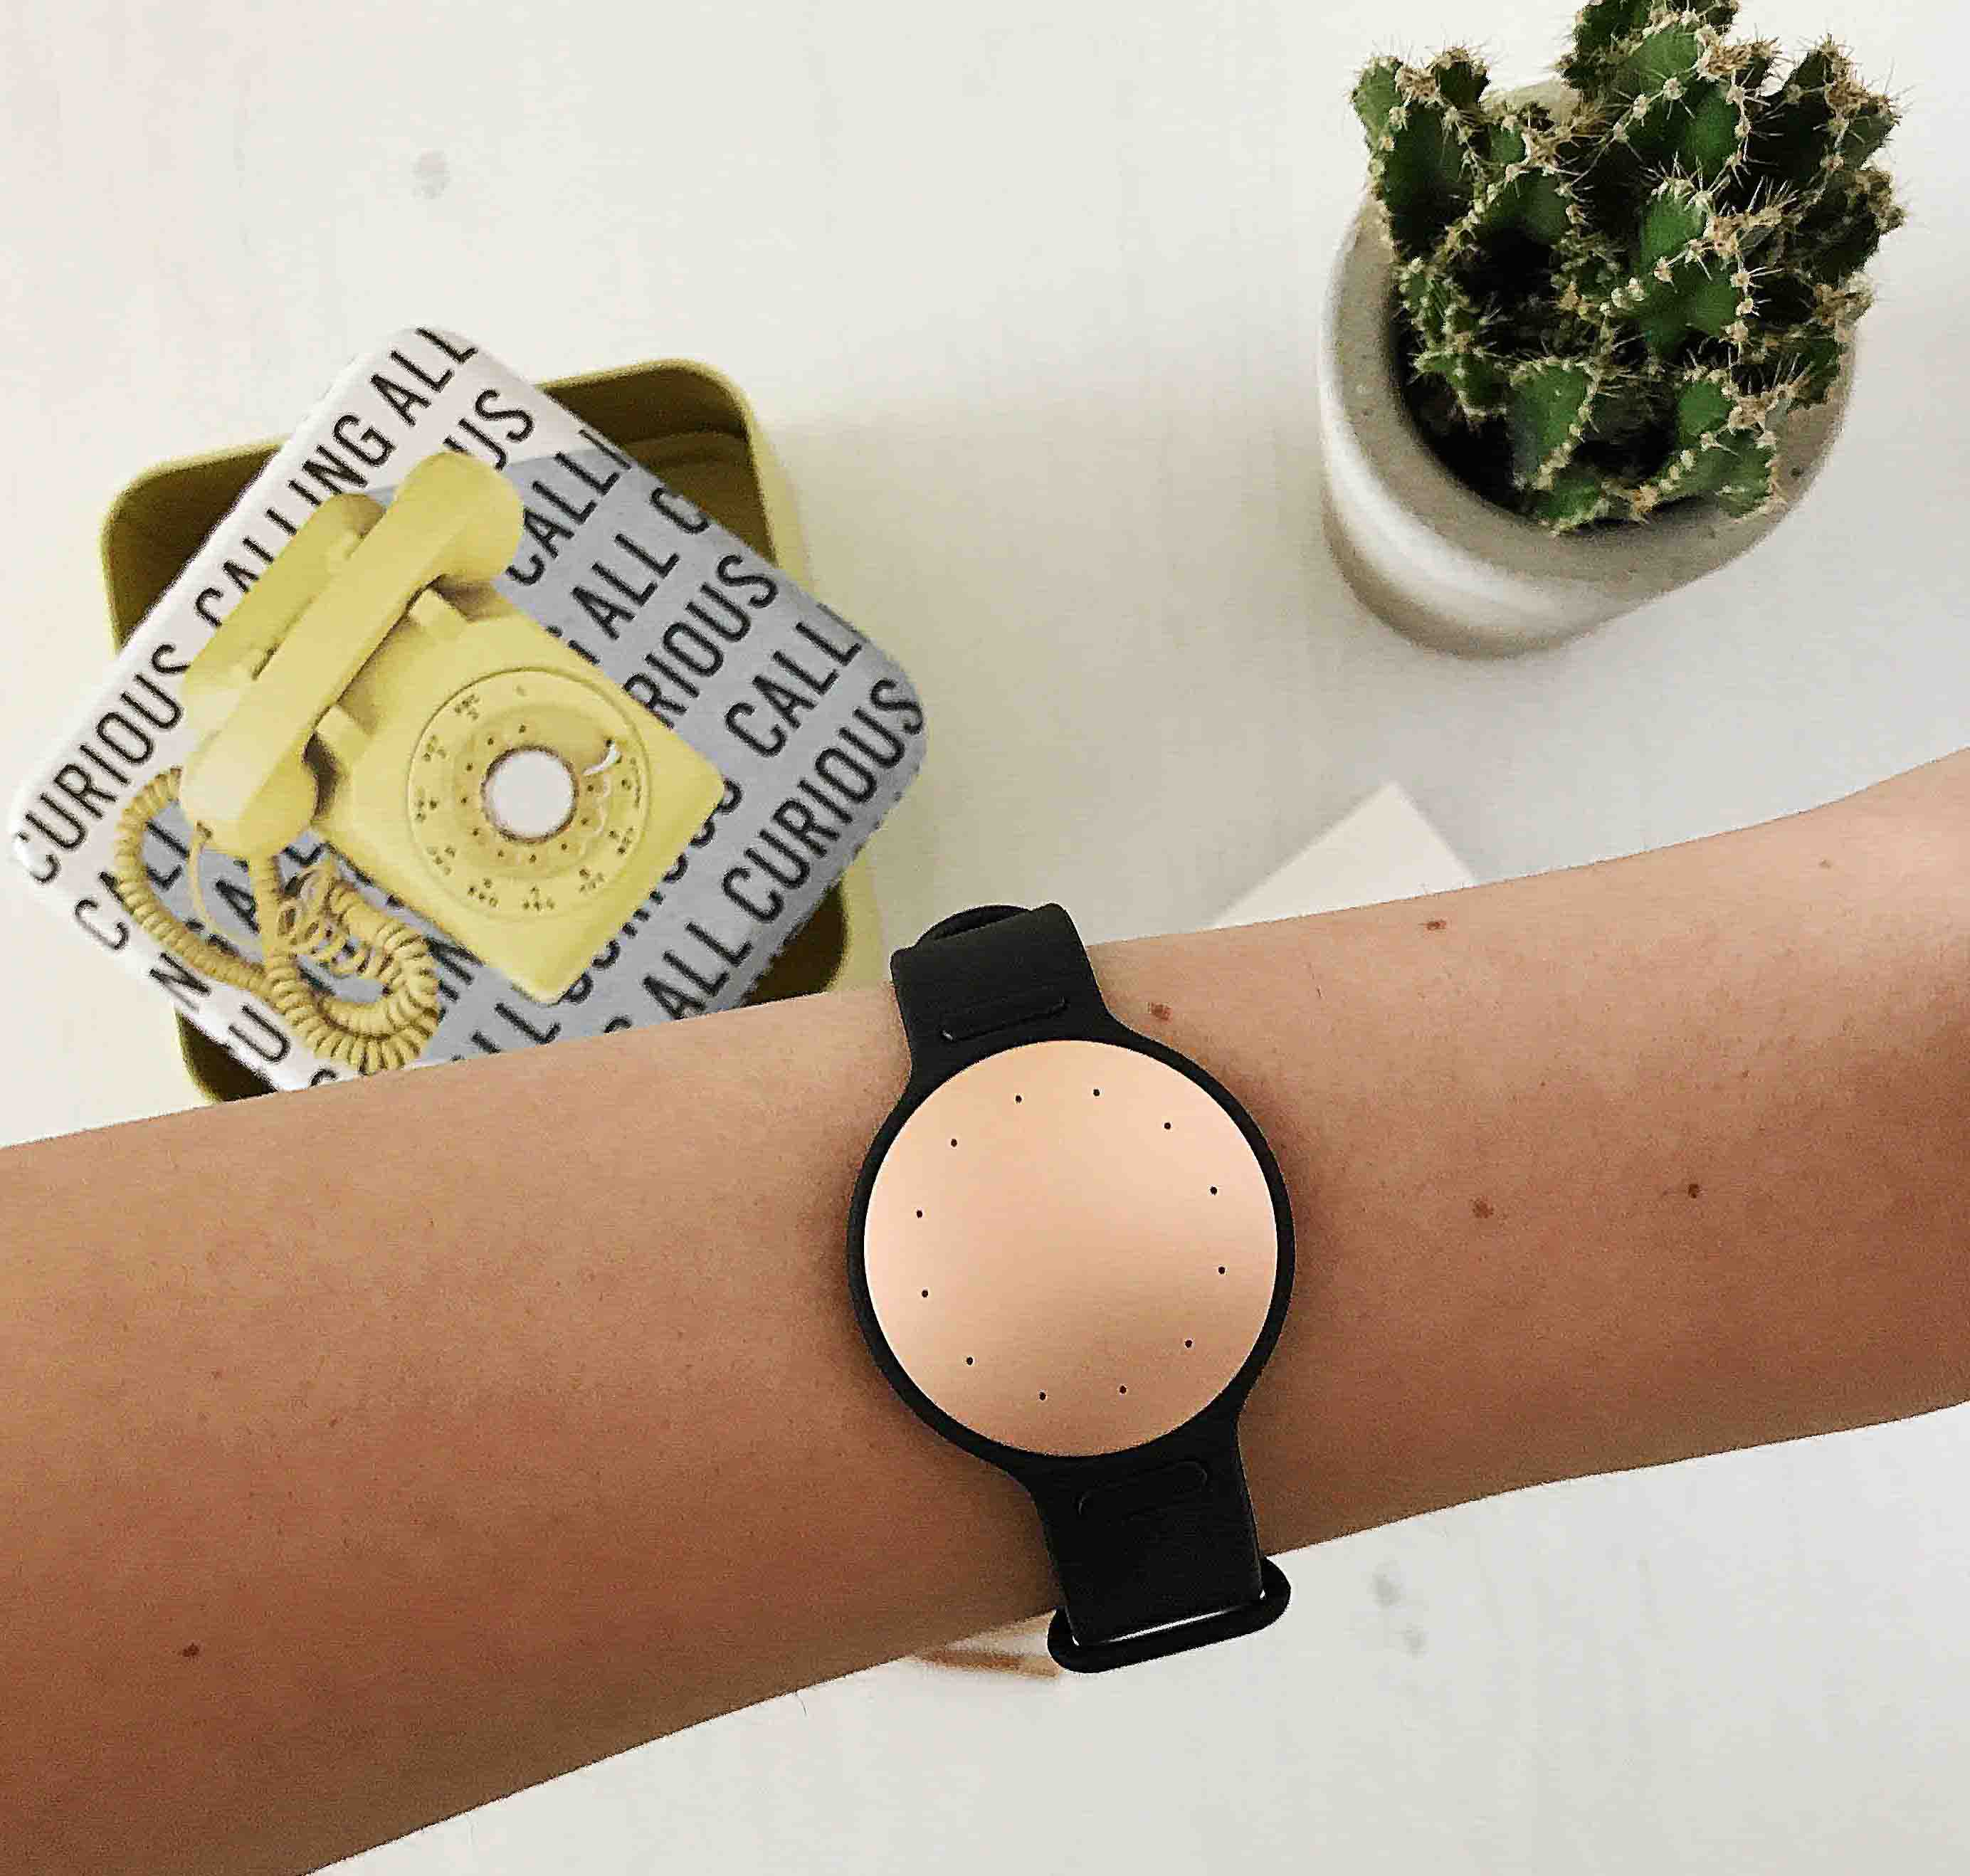 Discussion on this topic: Misfit Shine 2 Activity Tracker Review, misfit-shine-2-activity-tracker-review/